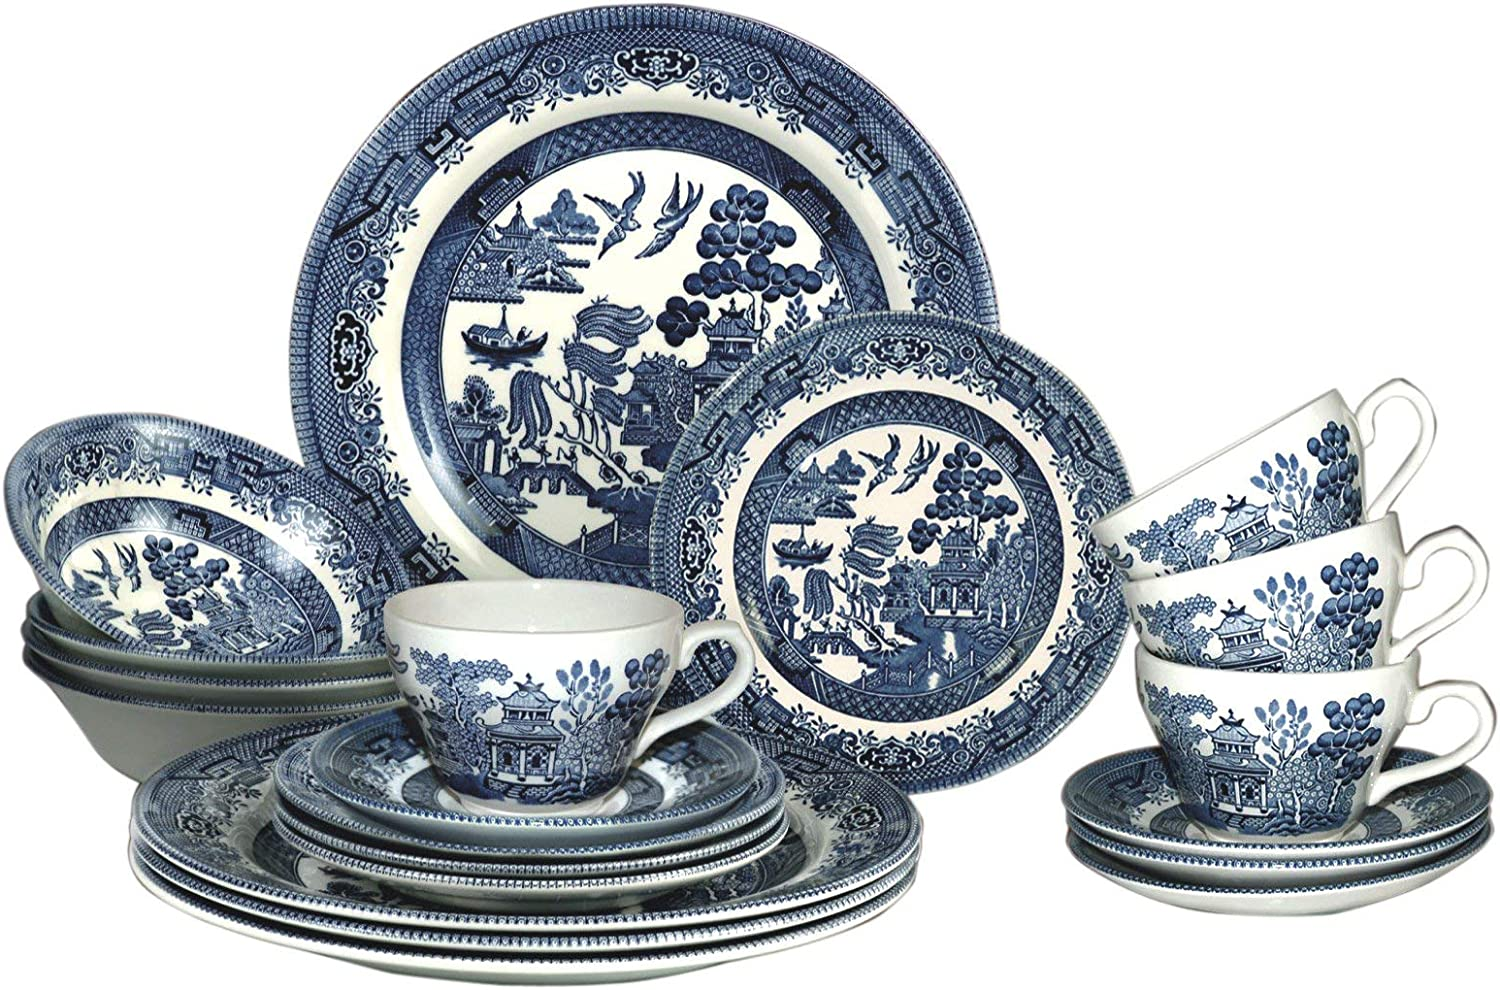 Image of Churchill Blue Willow Plates Bowls Cups 20 Piece Dinnerware Set, Made in England Home and Kitchen